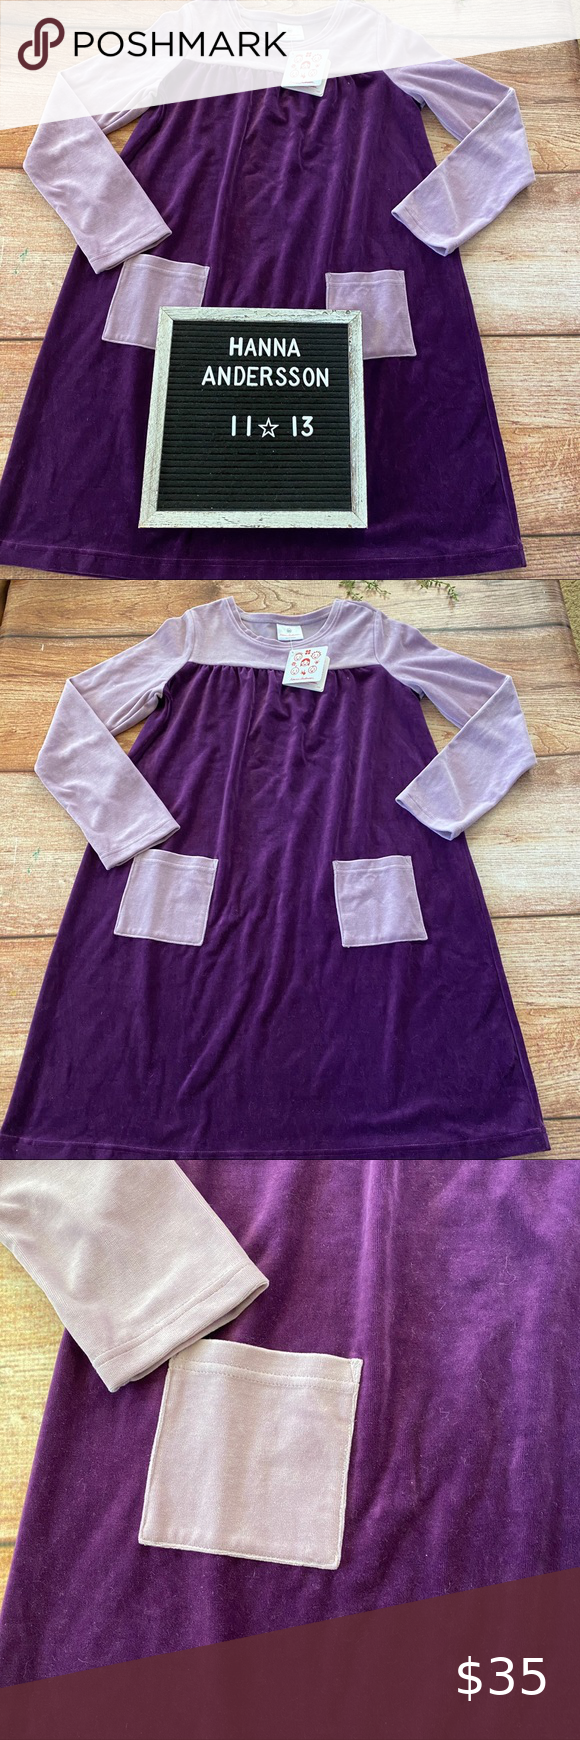 Hanna Andersson NWT purple dress 150 11-13 years New with tags two tone purple Hanna Andersson velvet dr de with front pockets. Size 150 or 11-13 years (J0826) Hanna Andersson Dresses